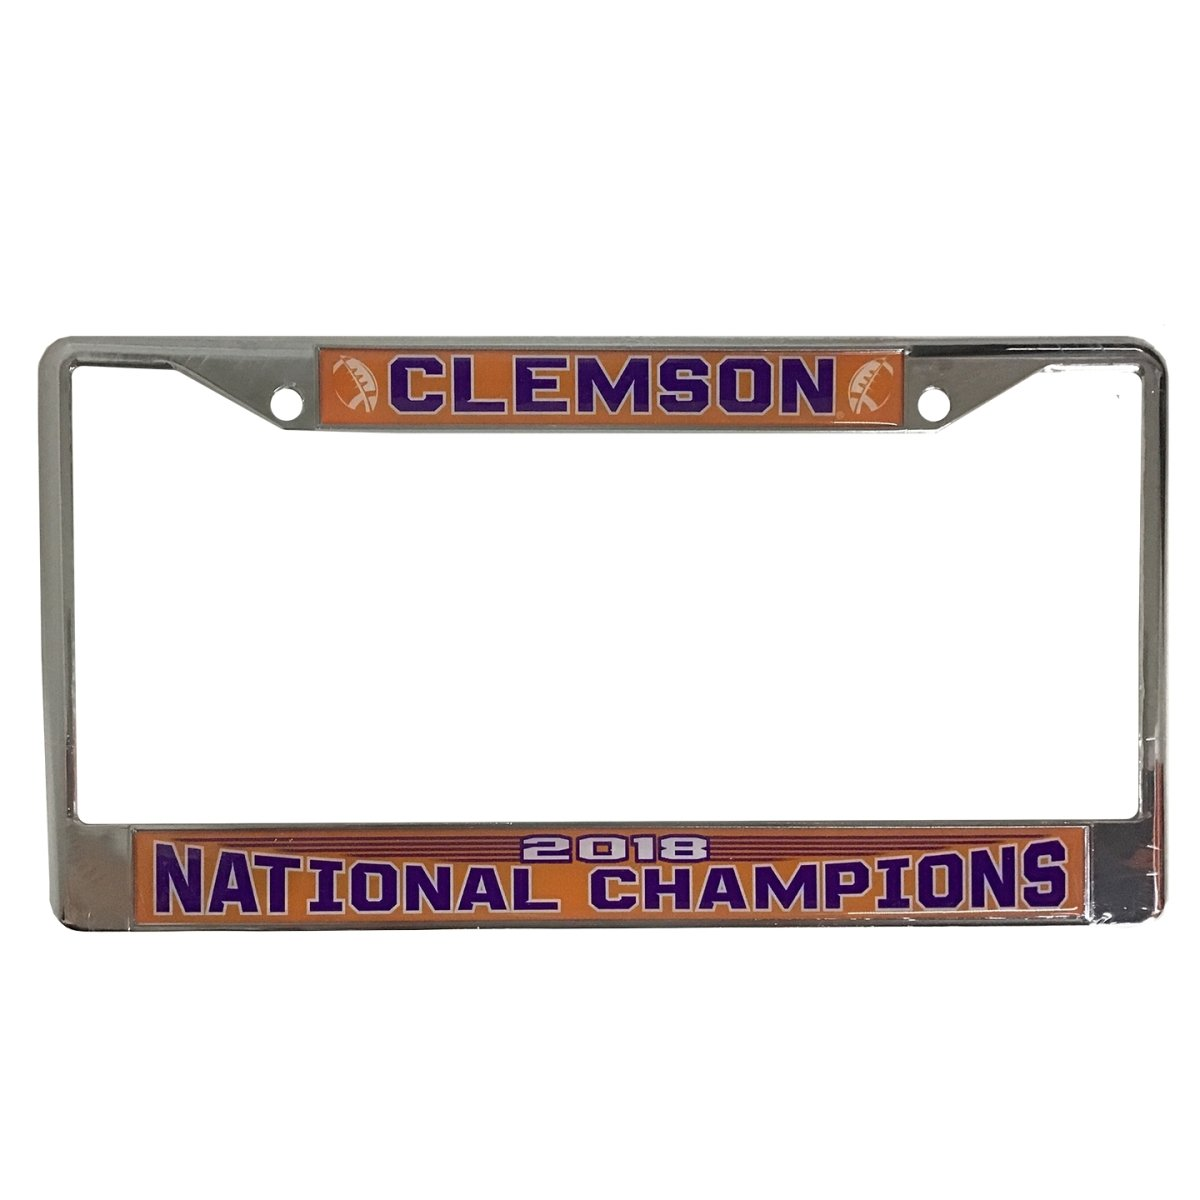 2018 National Champions Chrome With Domed Clemson Over Nc - Mr. Knickerbocker